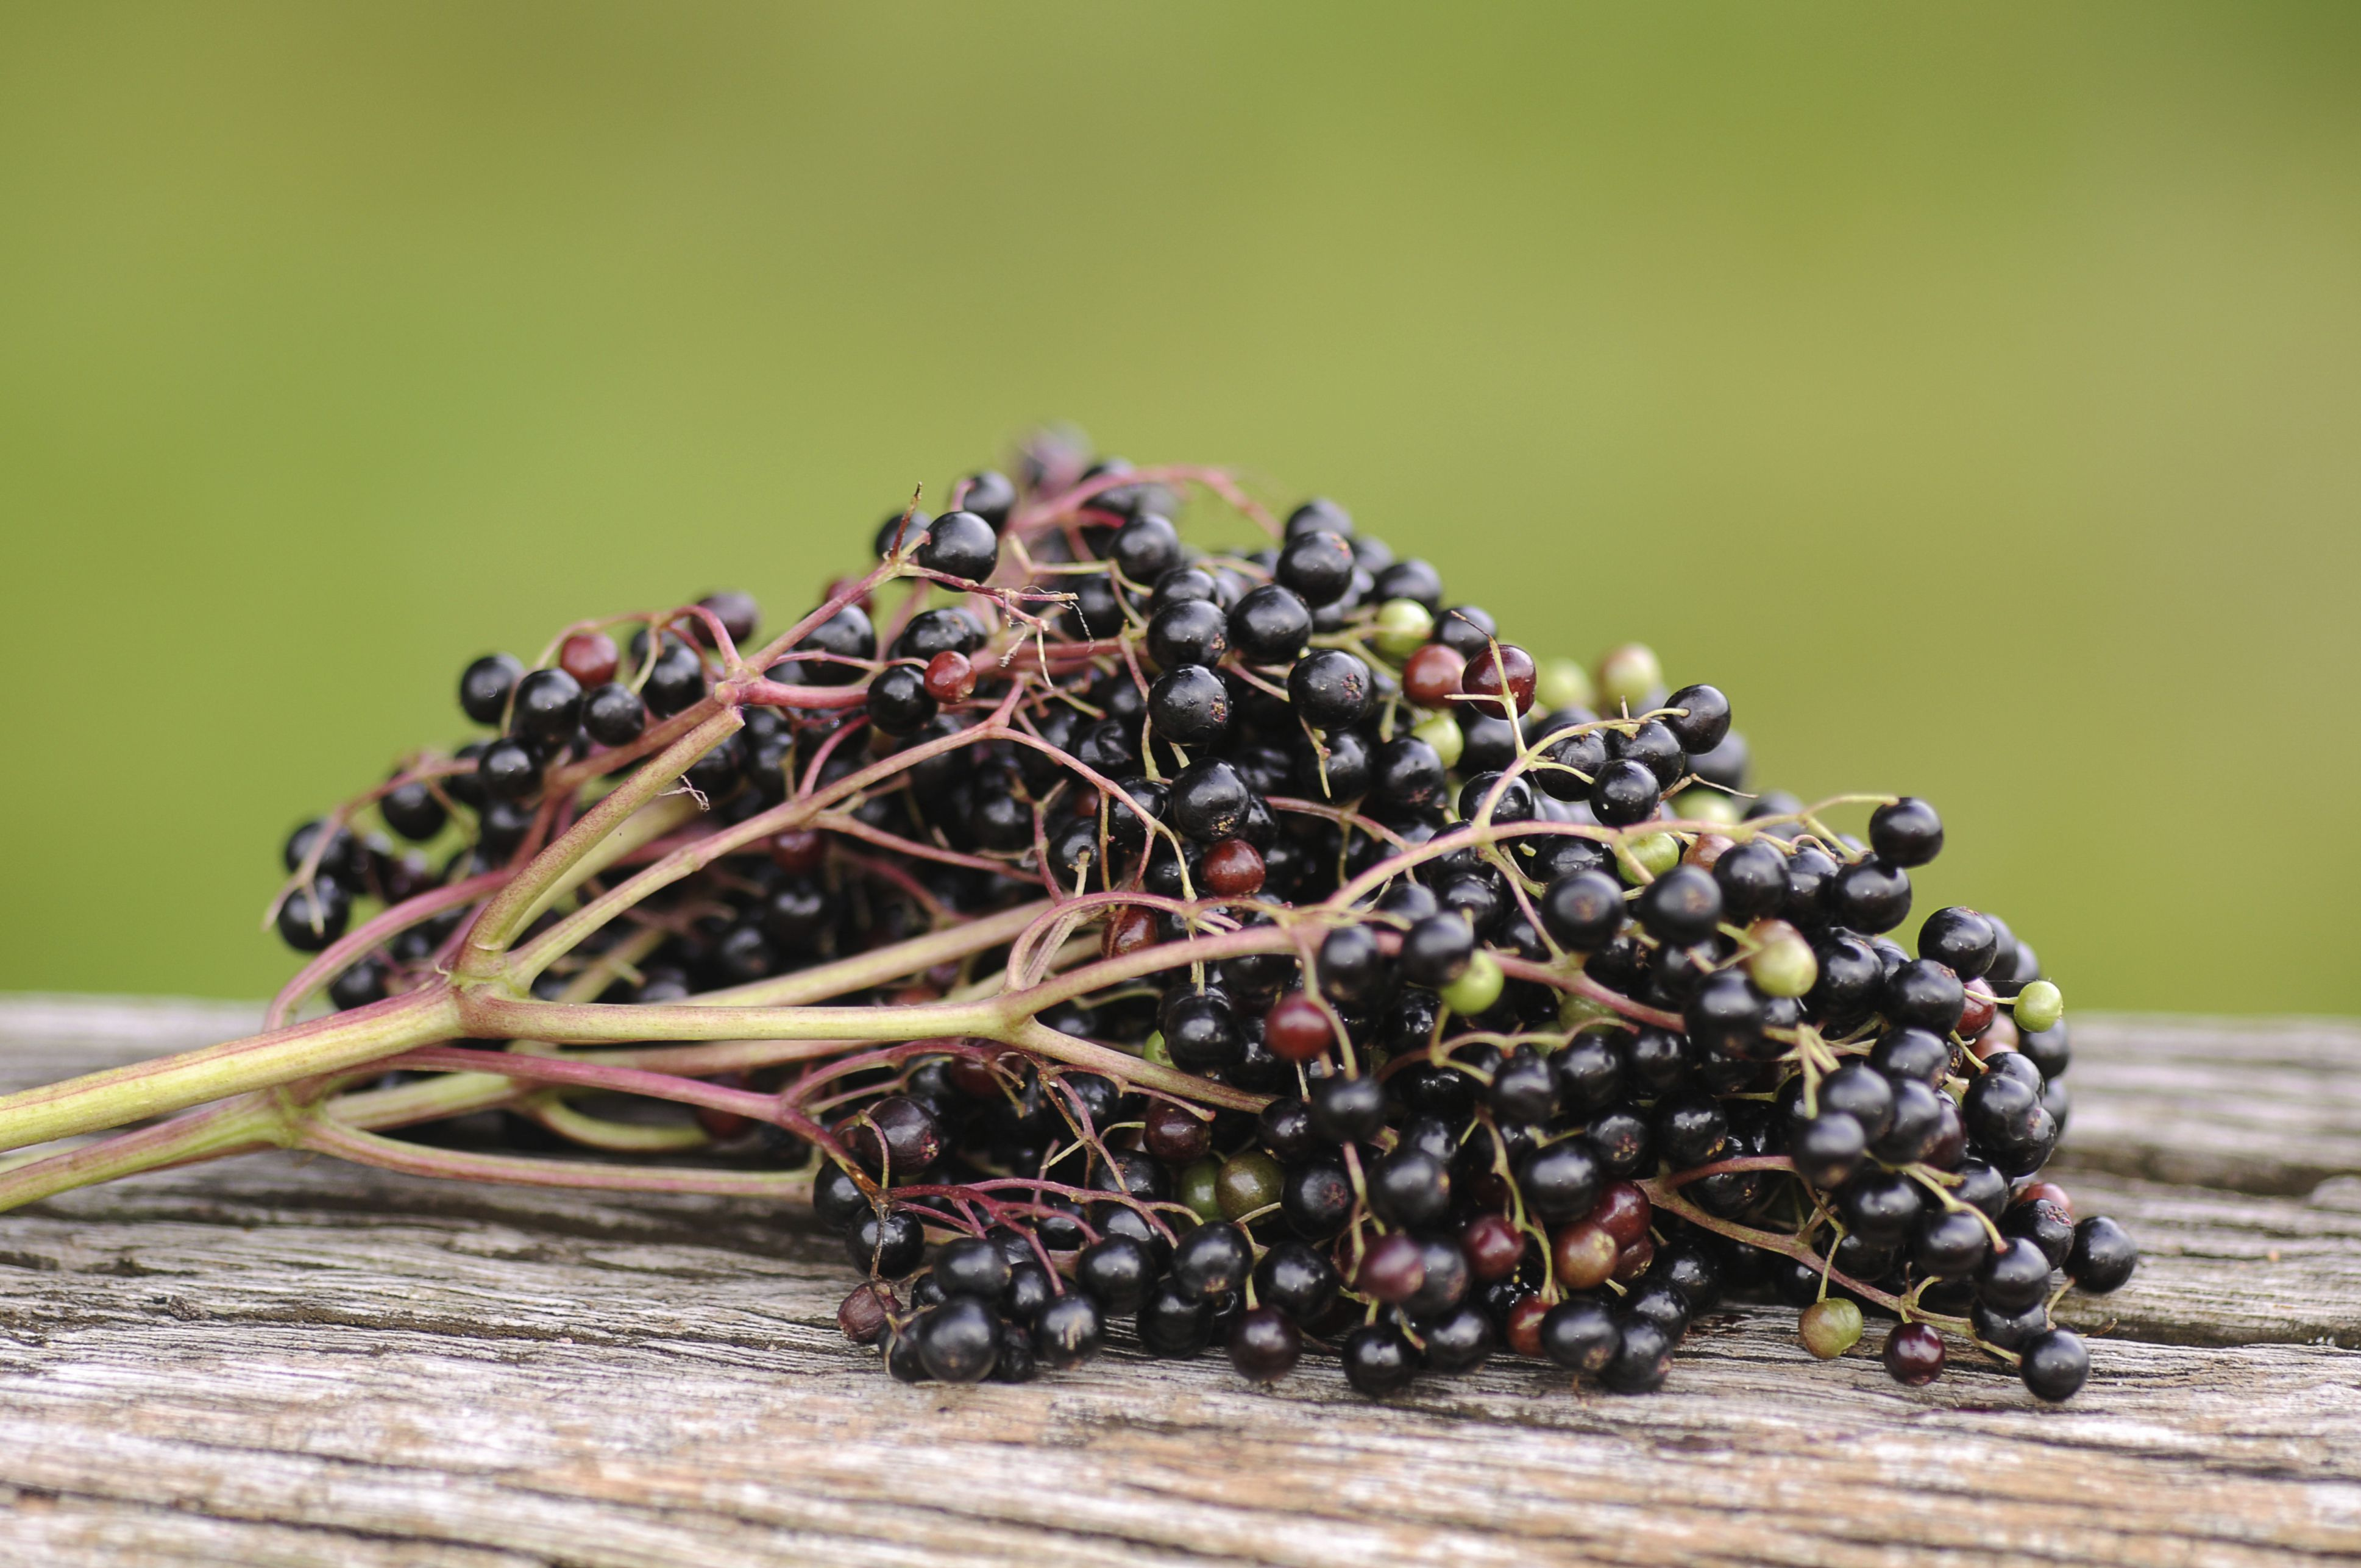 Elderberries are good for you.